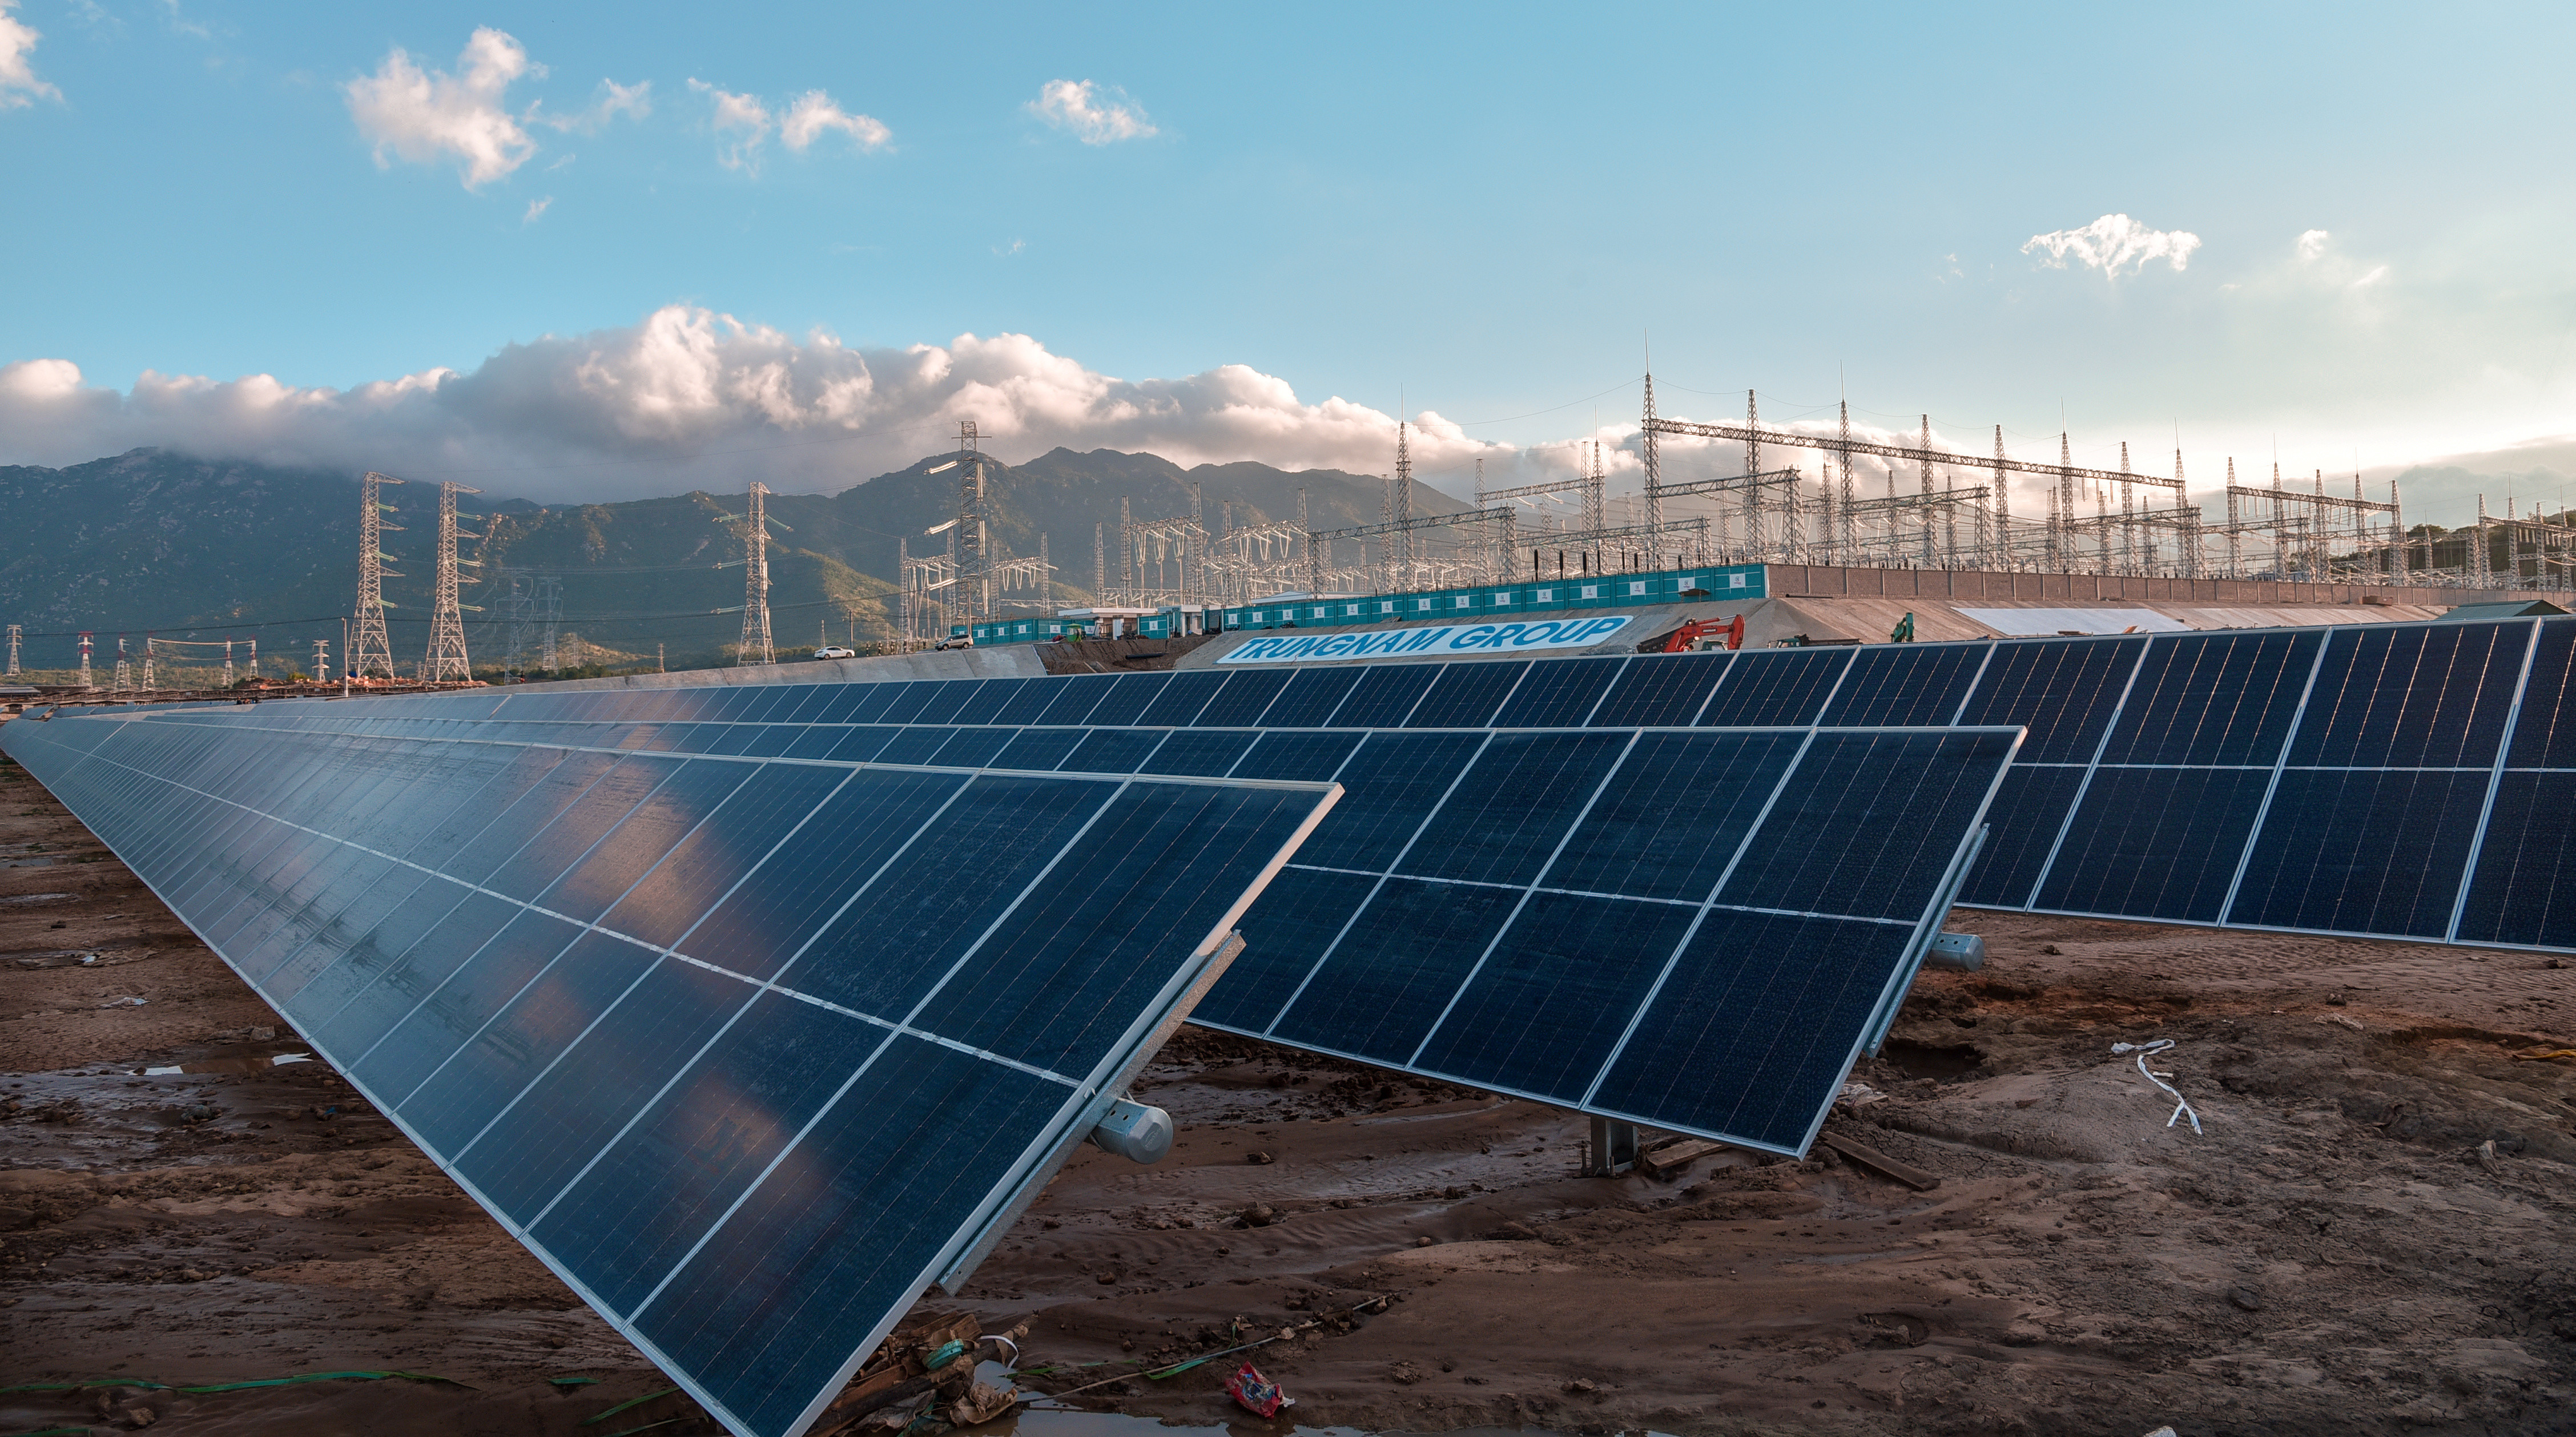 Panels are seen at a solar power farm of Trung Nam group in Ninh Thuan province, Vietnam September 3, 2020. Picture taken September 3, 2020. Trung Nam Group/Handout via REUTERS ATTENTION EDITORS - THIS IMAGE WAS PROVIDED BY A THIRD PARTY. NO RESALES. NO ARCHIVES. - RC21HJ90EVBI